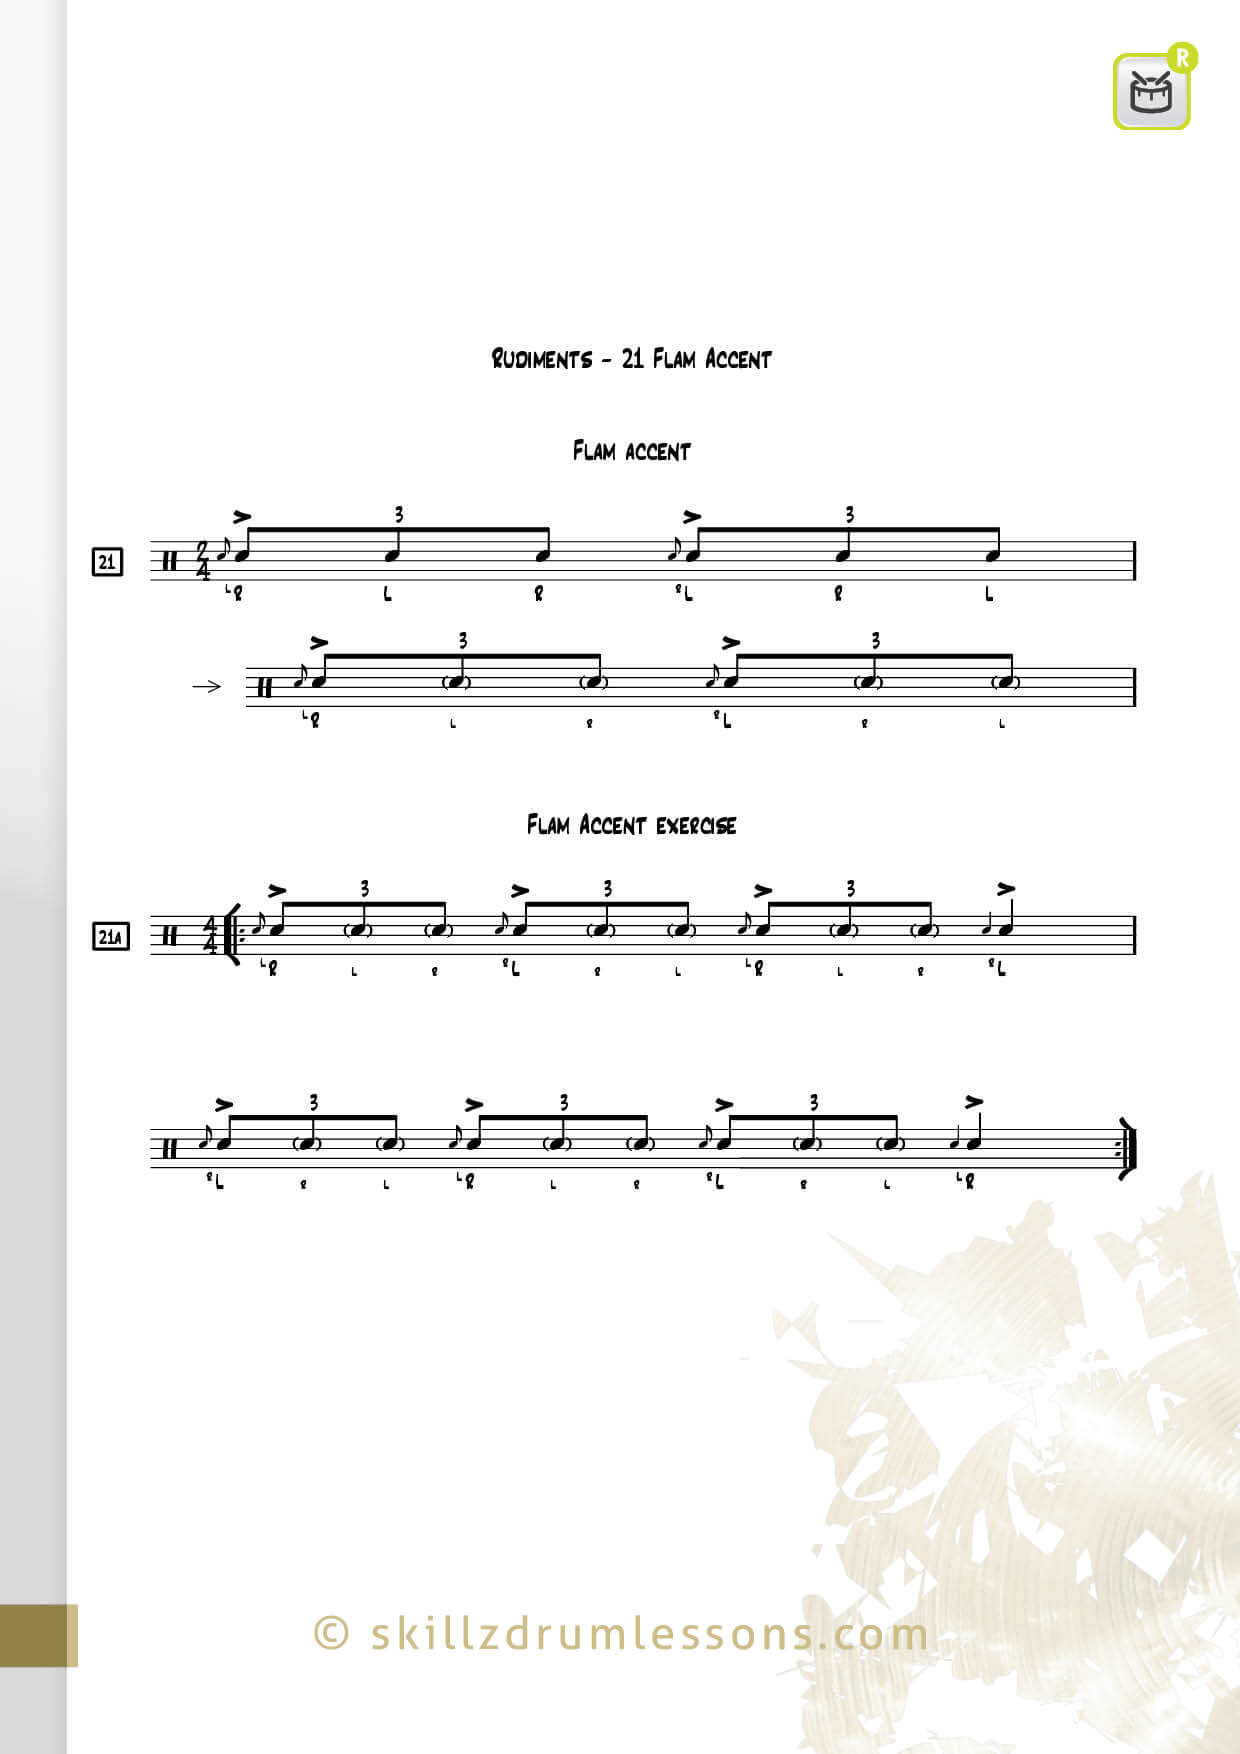 This is an image of the Official 40 Essential P.A.S. Rudiments #21 The Flam Accent by Skillz Drum Lessons